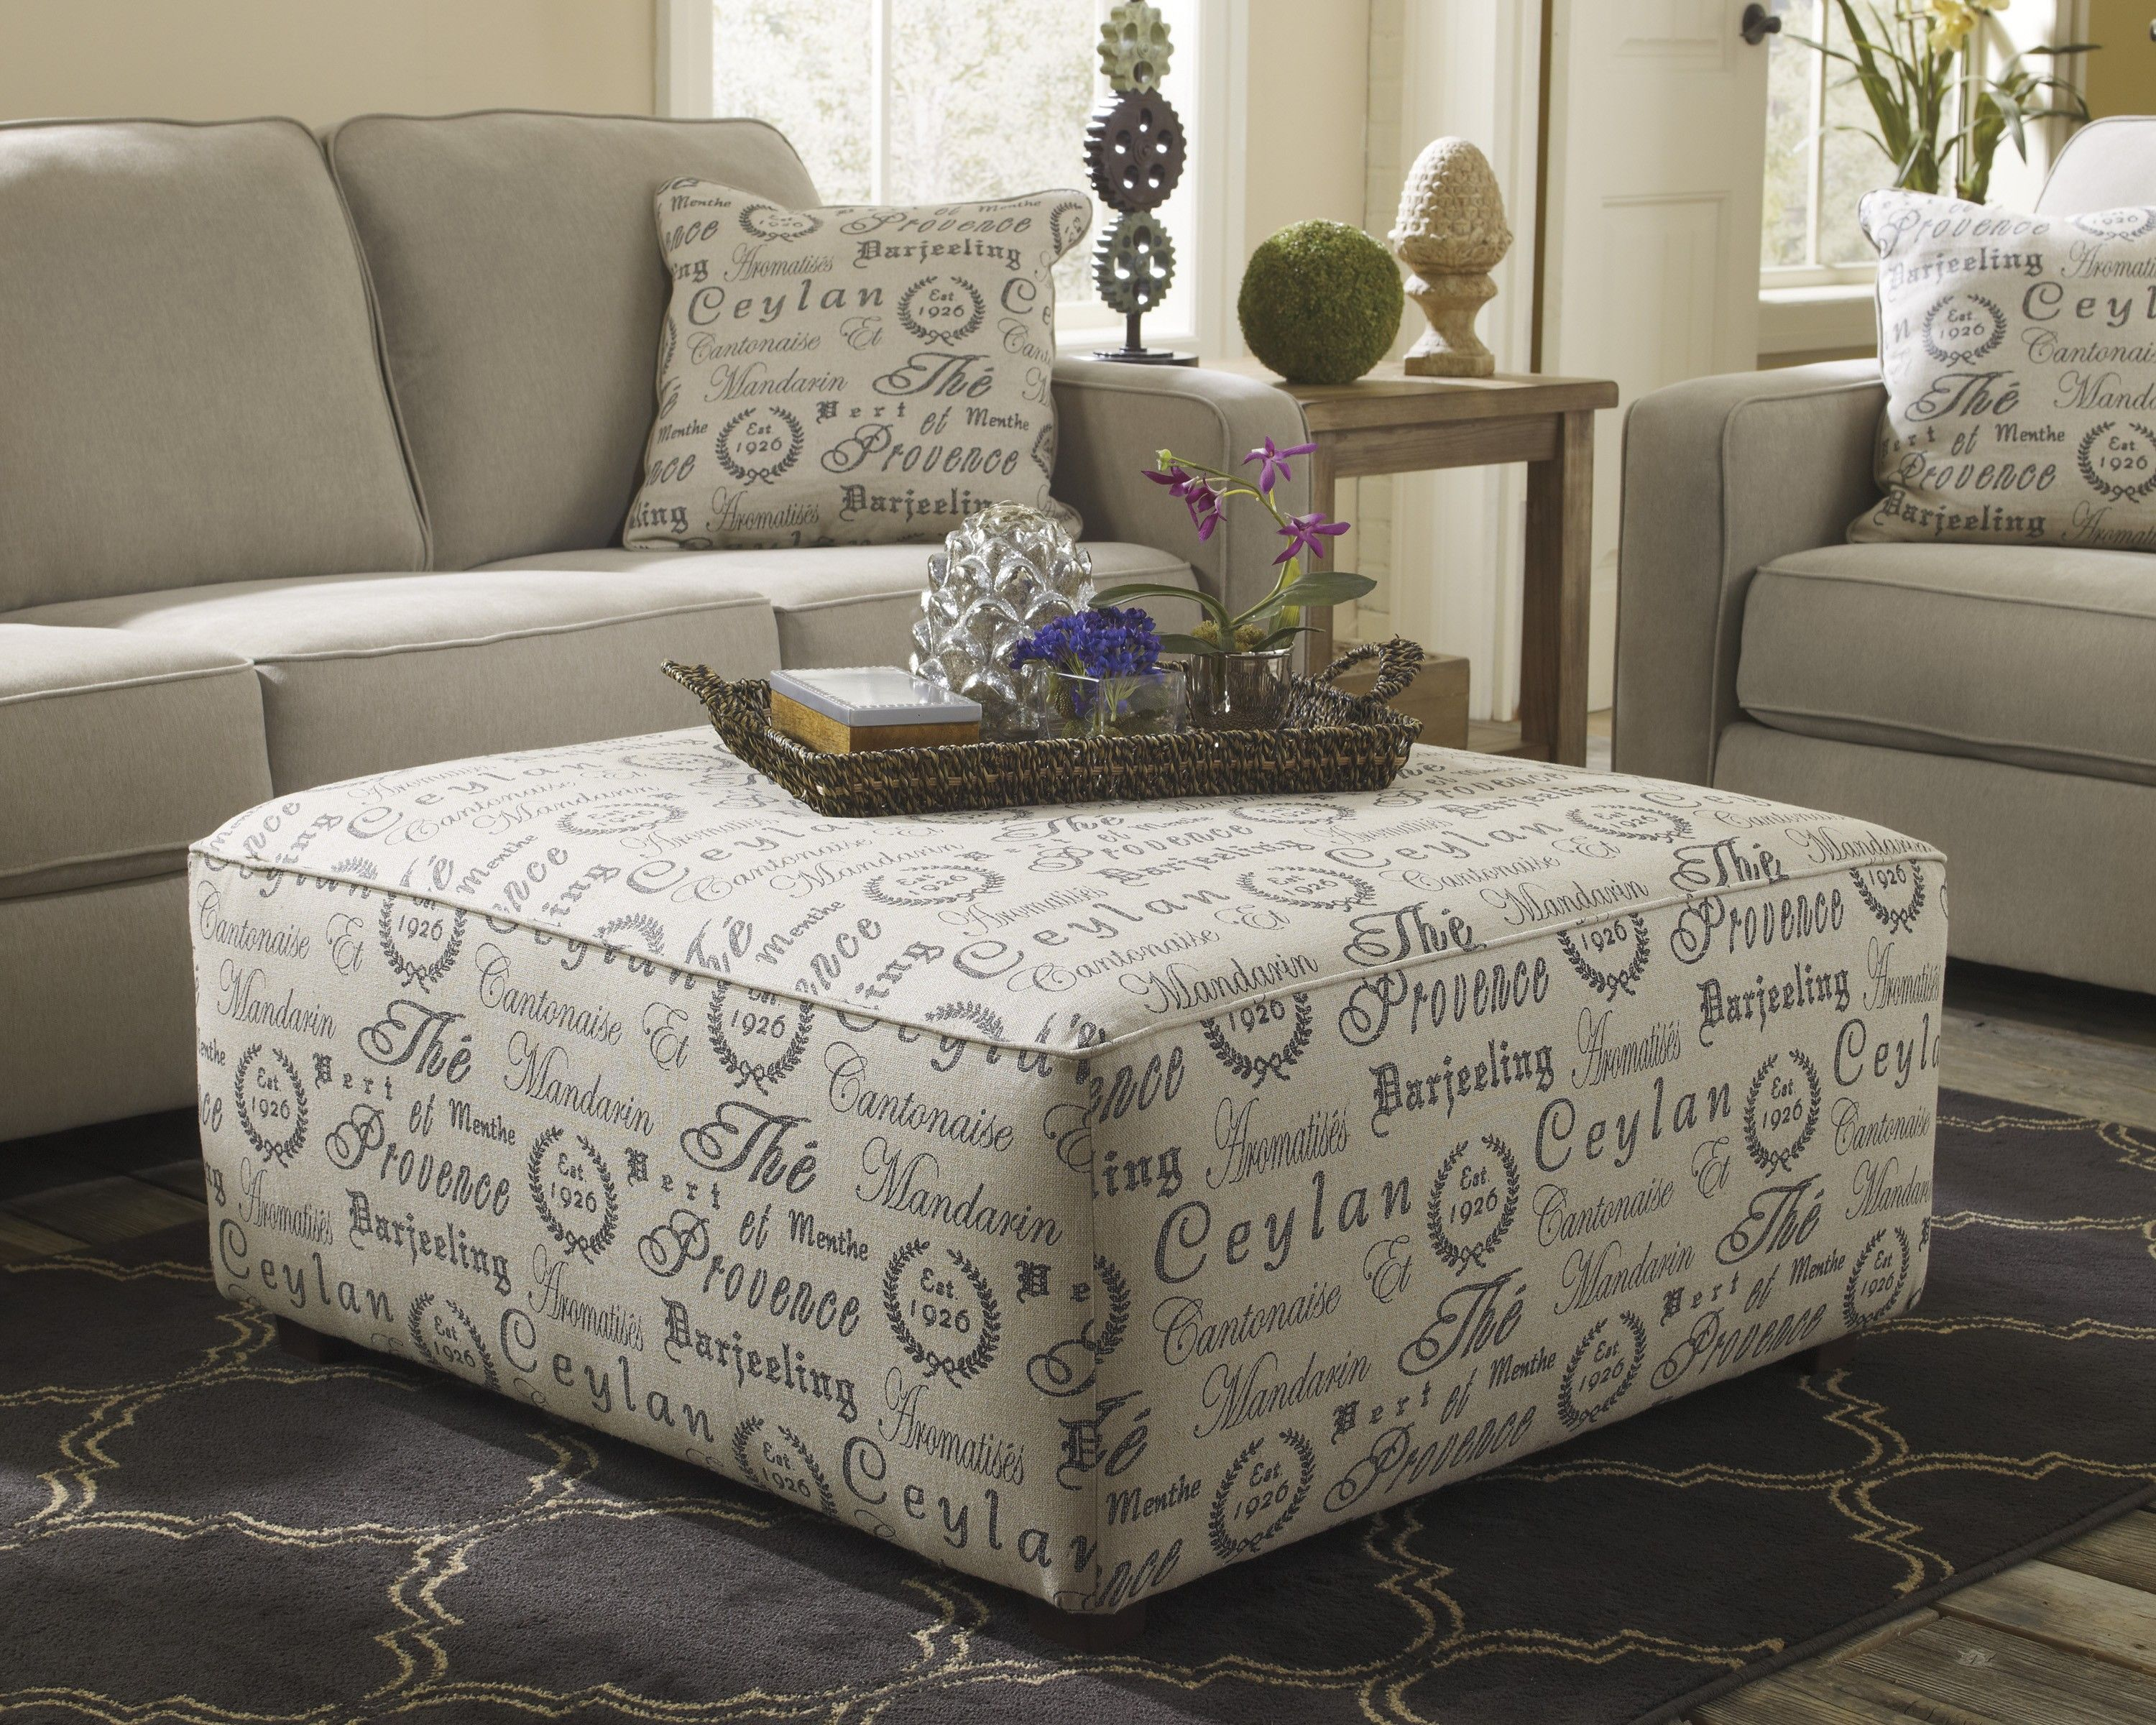 Ordinaire Oversized Ottoman For Exciting Coffee Table Design: Decorative Oversized  Ottoman With Tray On Dark Walmart Rugs And Loveseat Furniture With  Decorative ...